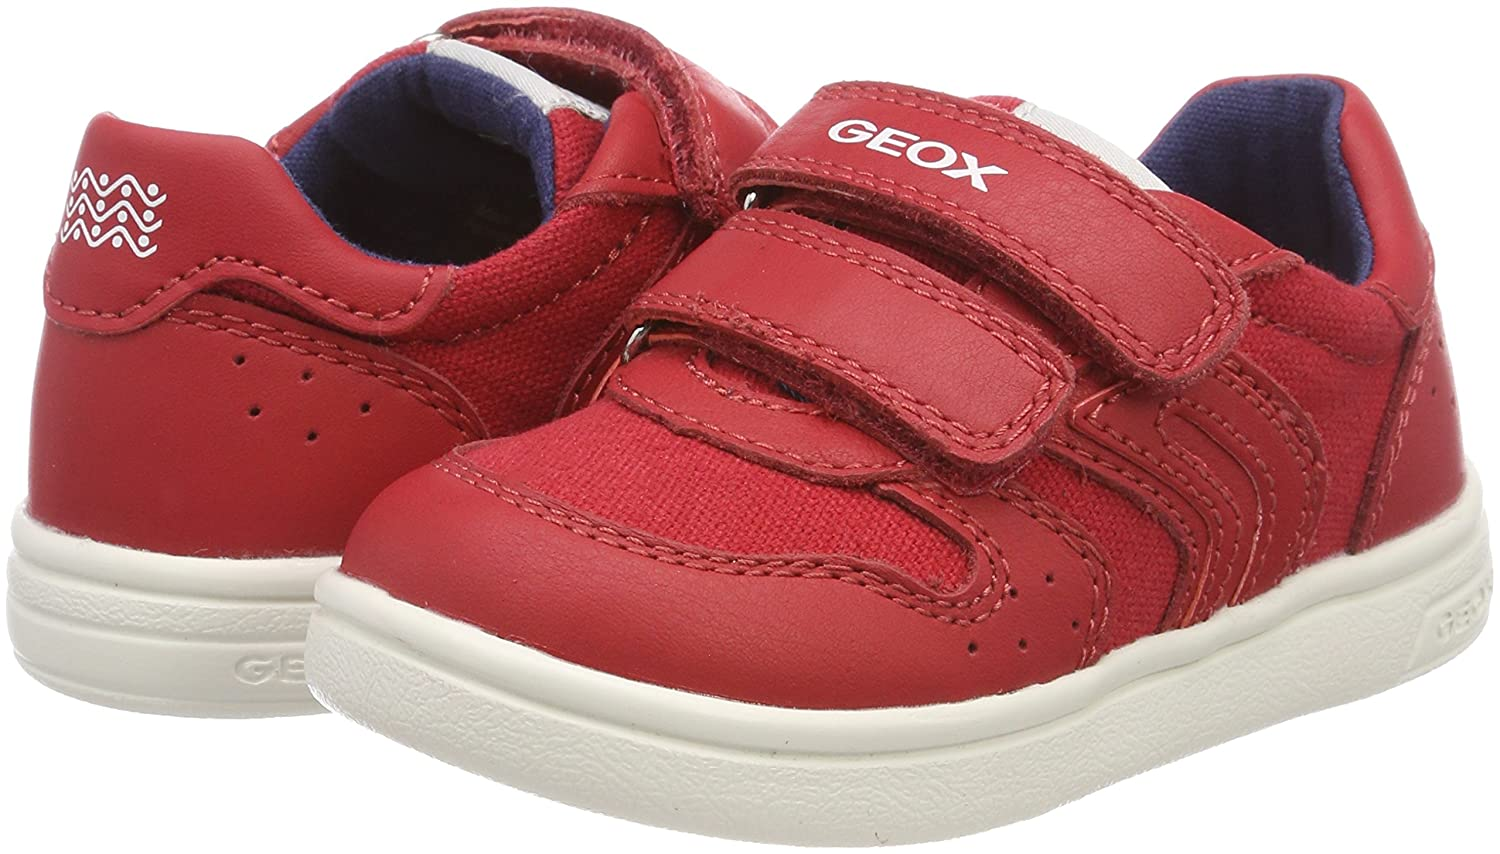 Geox Kids DJ Rock BOY 1 Sneaker